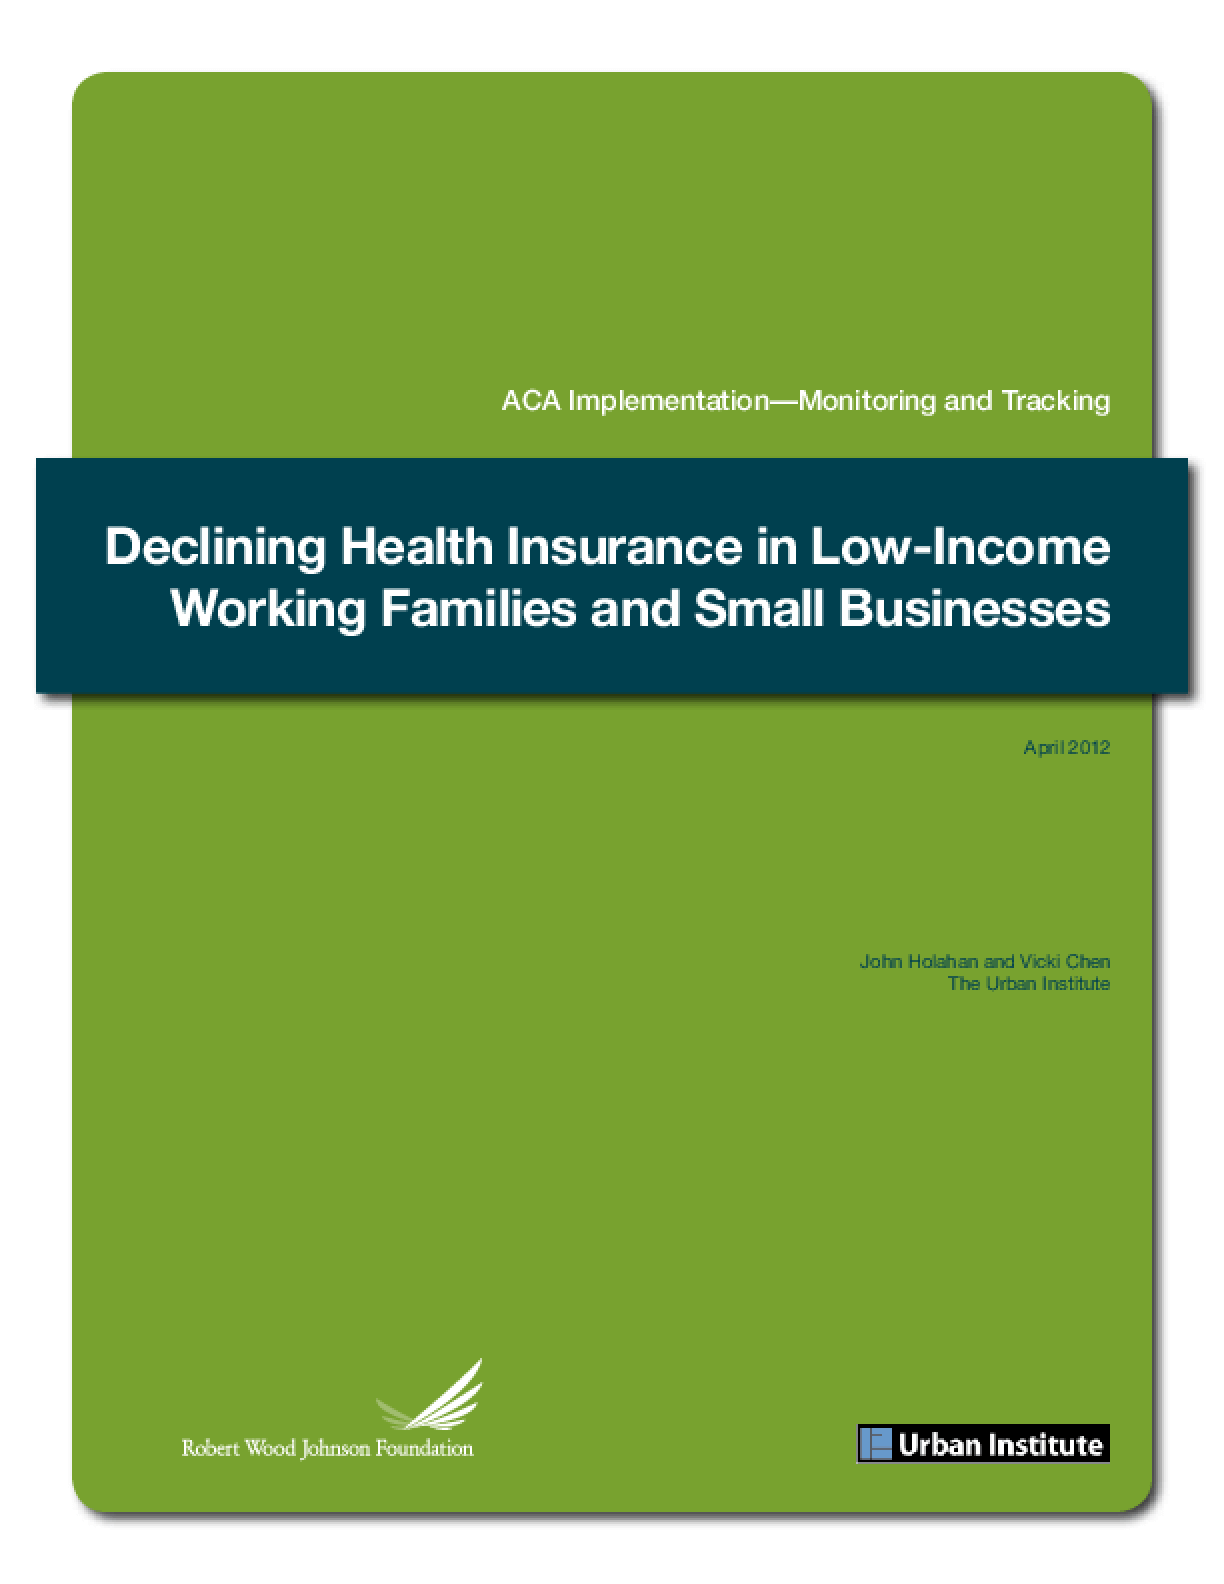 ACA Implementation Monitoring and Tracking: Declining Health Insurance in Low-Income Working Families and Small Businesses